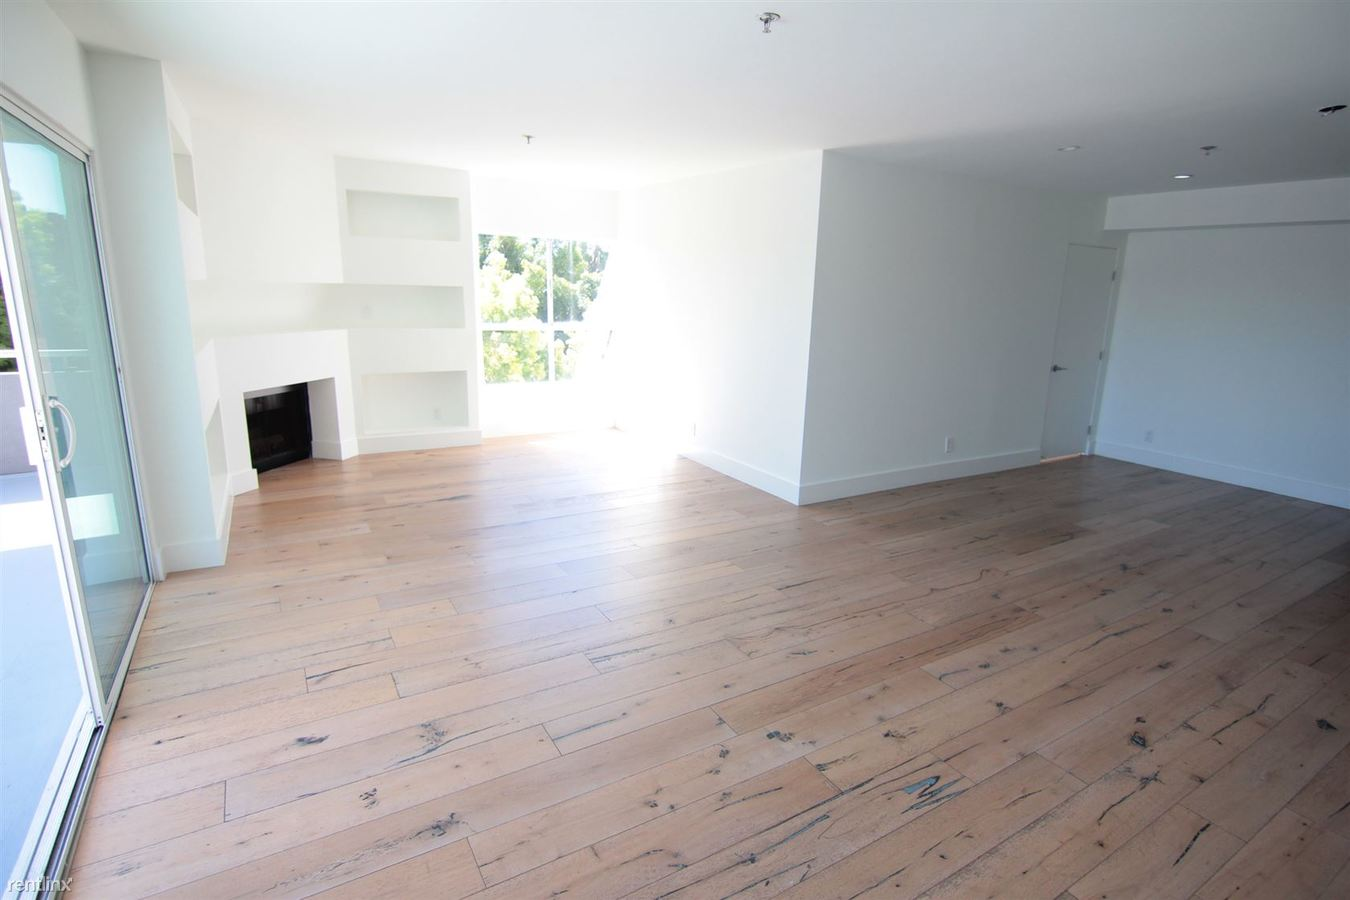 3 Bedrooms 2 Bathrooms Apartment for rent at 939 Palm Ave in West Hollywood, CA